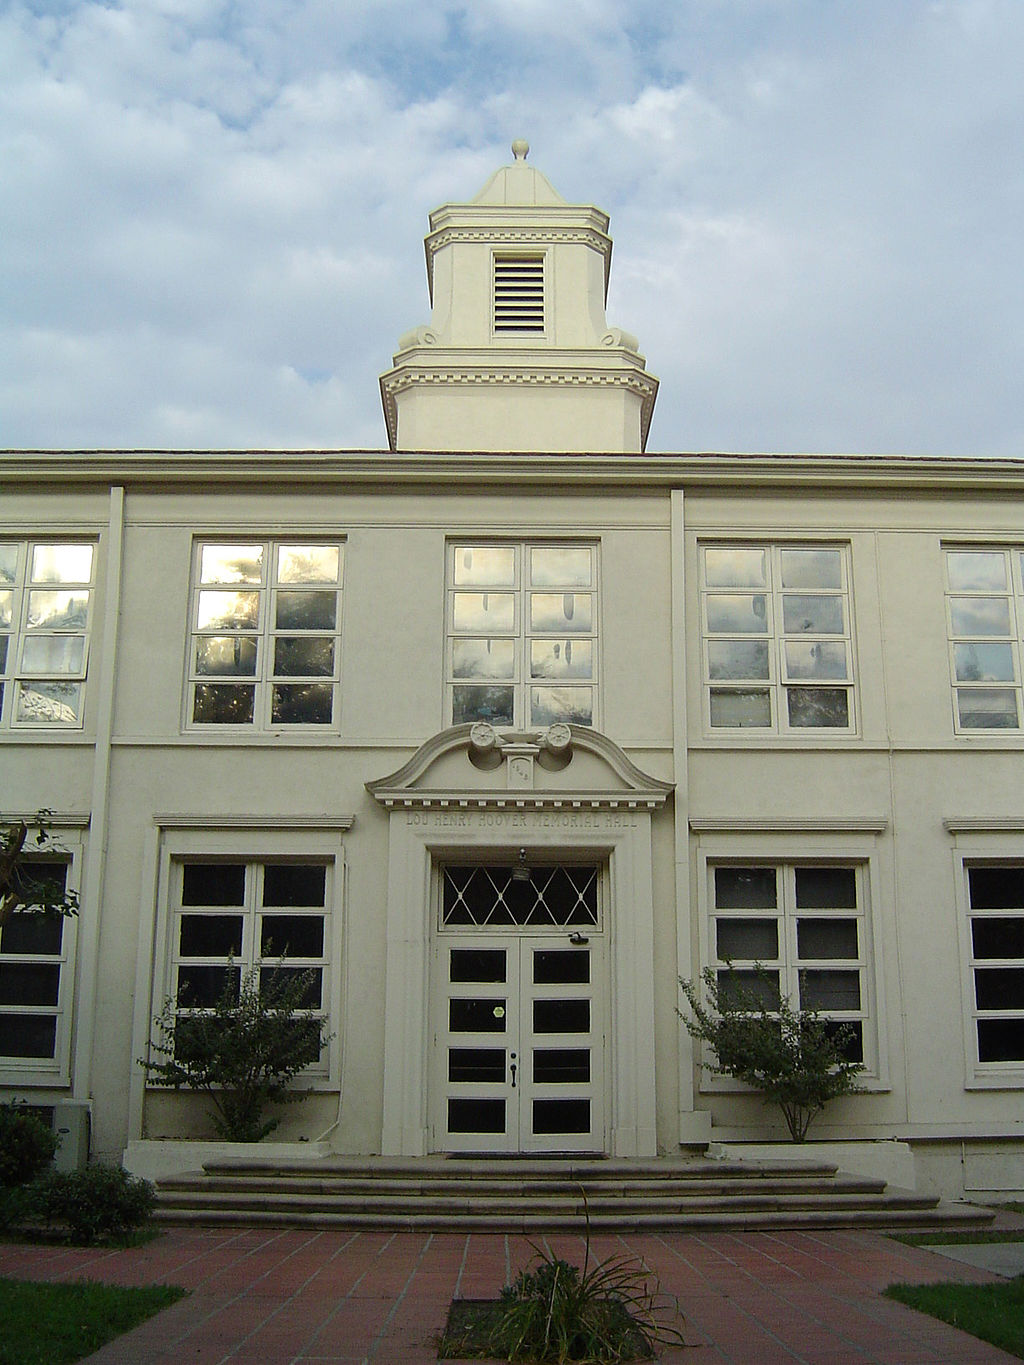 https://upload.wikimedia.org/wikipedia/commons/thumb/e/e7/Hoover_Hall_whittier.jpg/1024px-Hoover_Hall_whittier.jpg